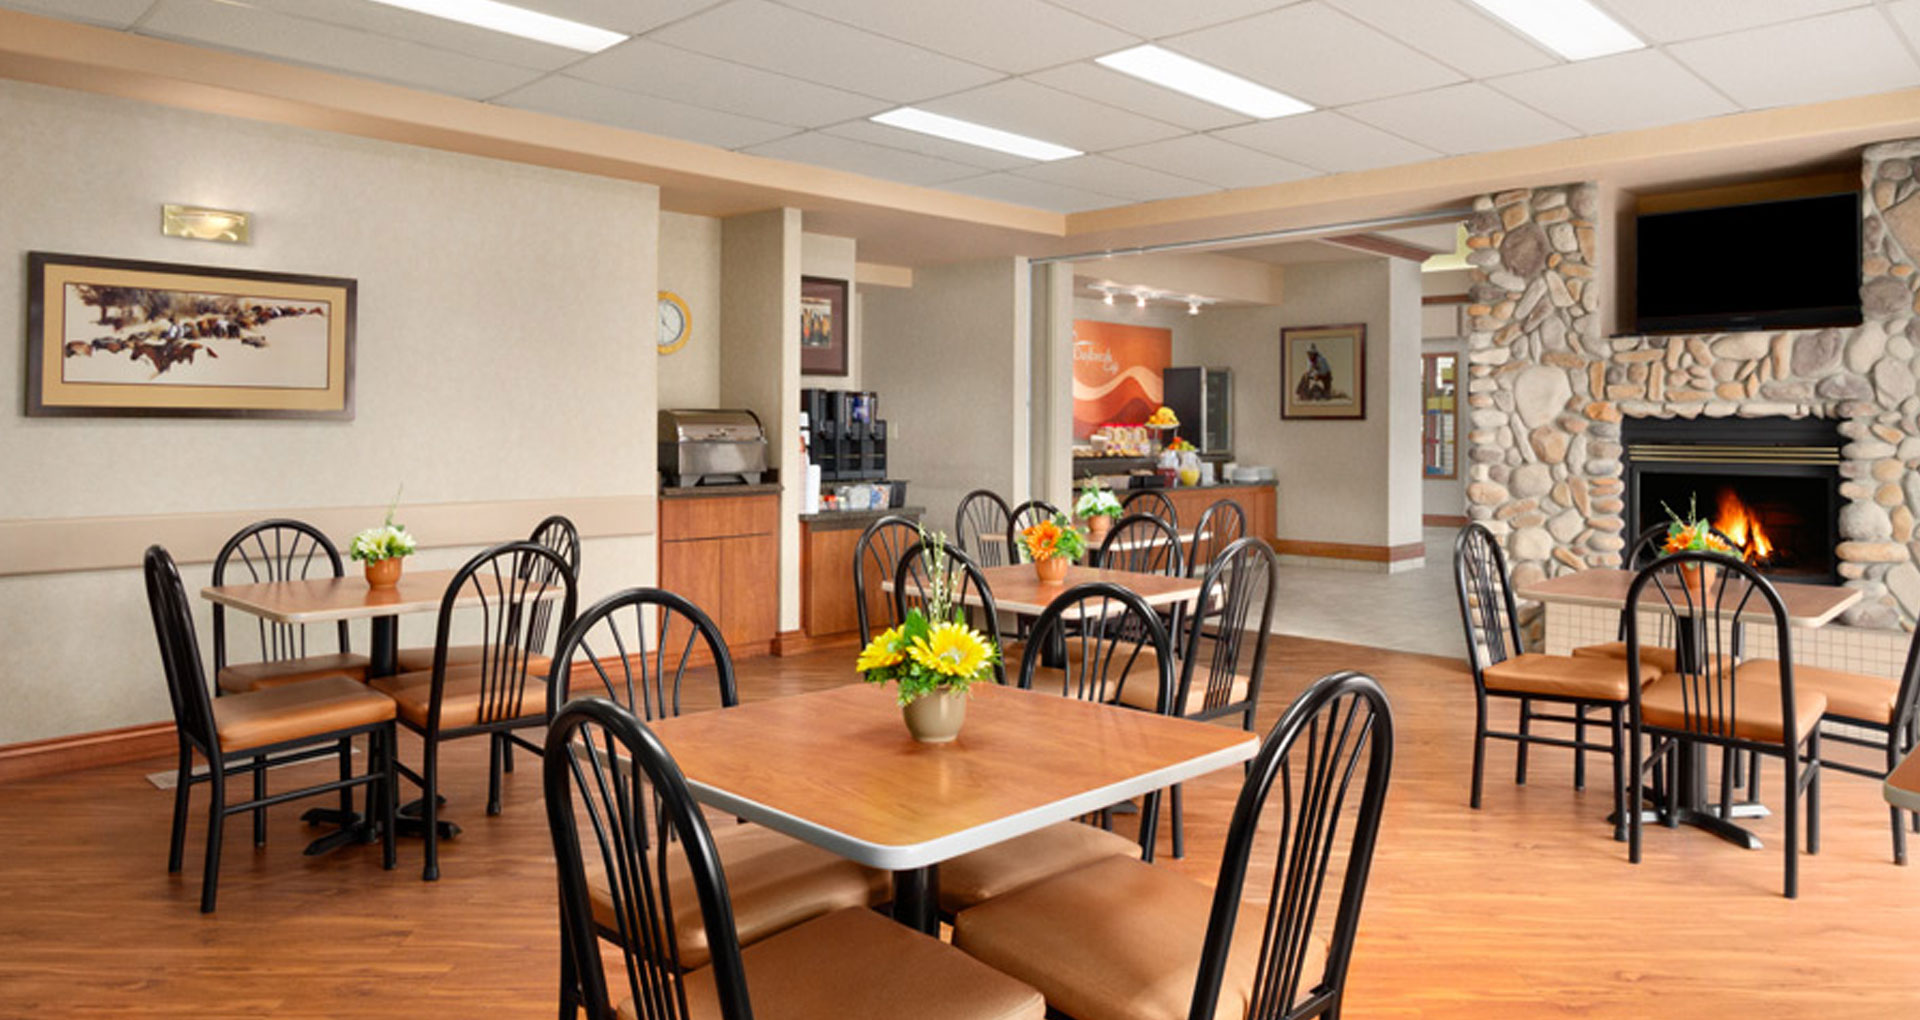 Large panoramic view of the Daybreak Café at Days Inn Red Deer with square eating tables and comfortable chairs are placed around a lit fireplace.